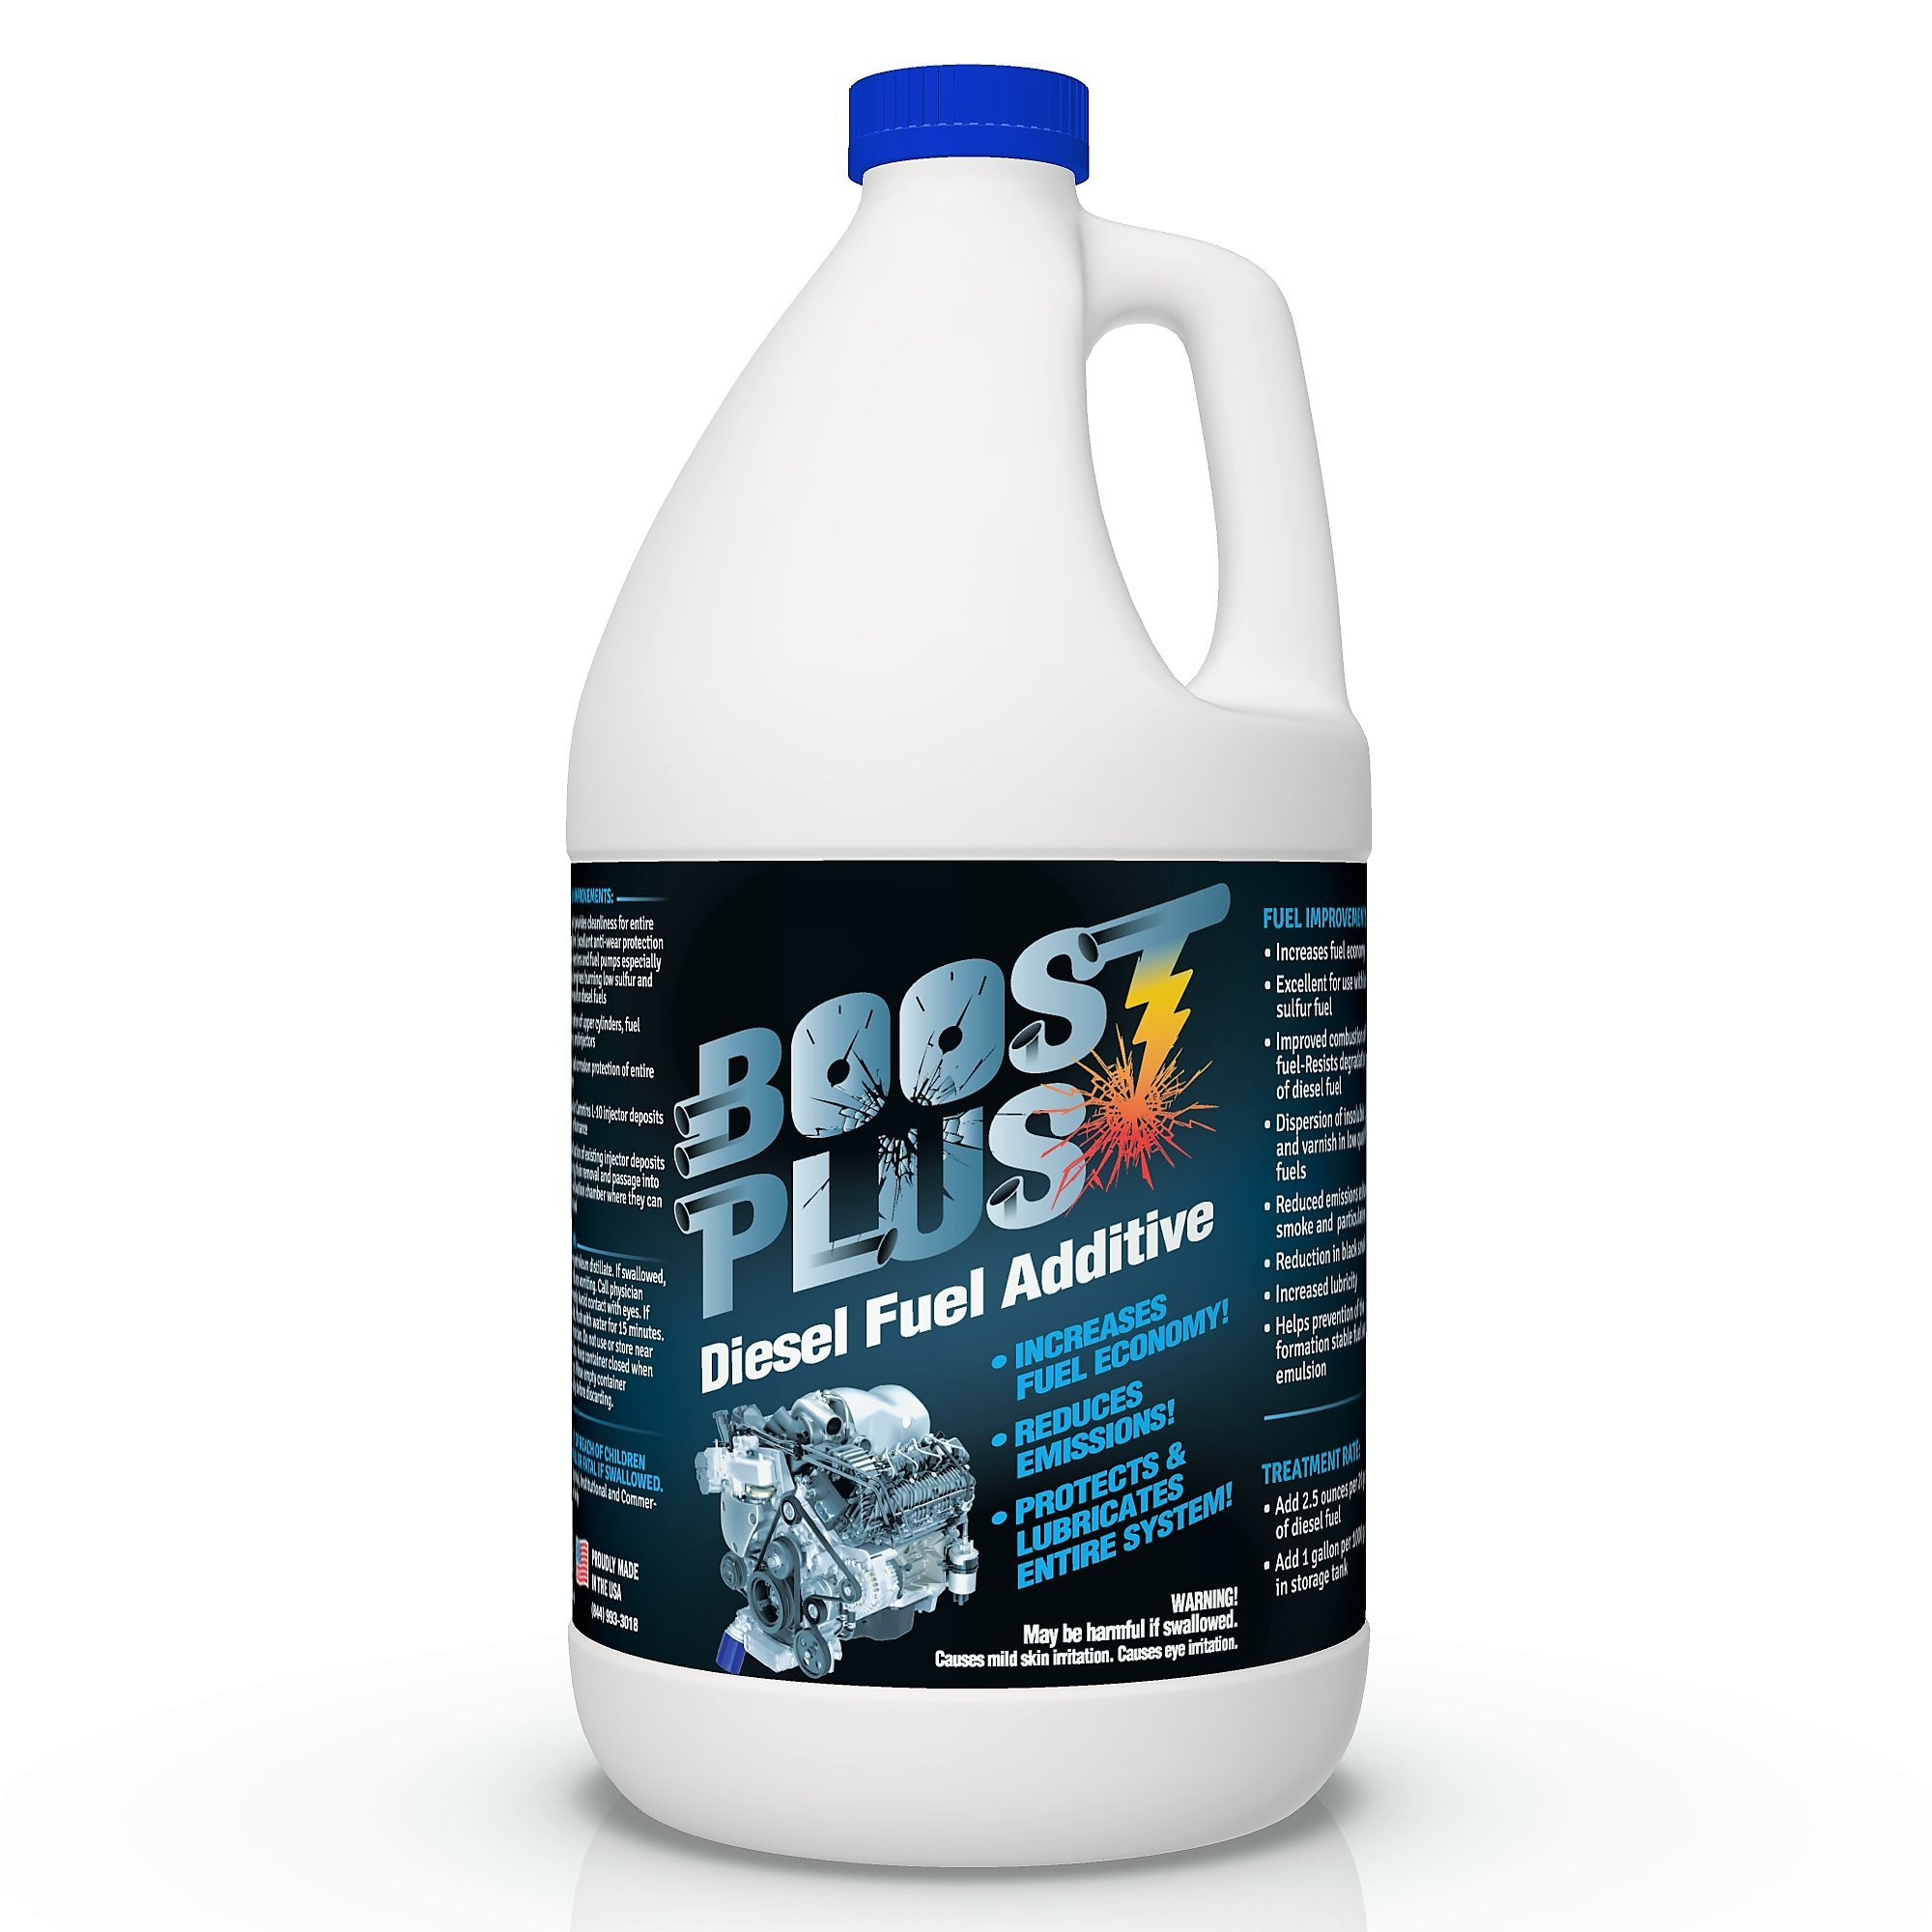 Boost PLUS | Best Diesel Engine Fuel Additive | Cleans Engine and Increases Fuel Economy (1 Gallon) by EcoClean Solutions